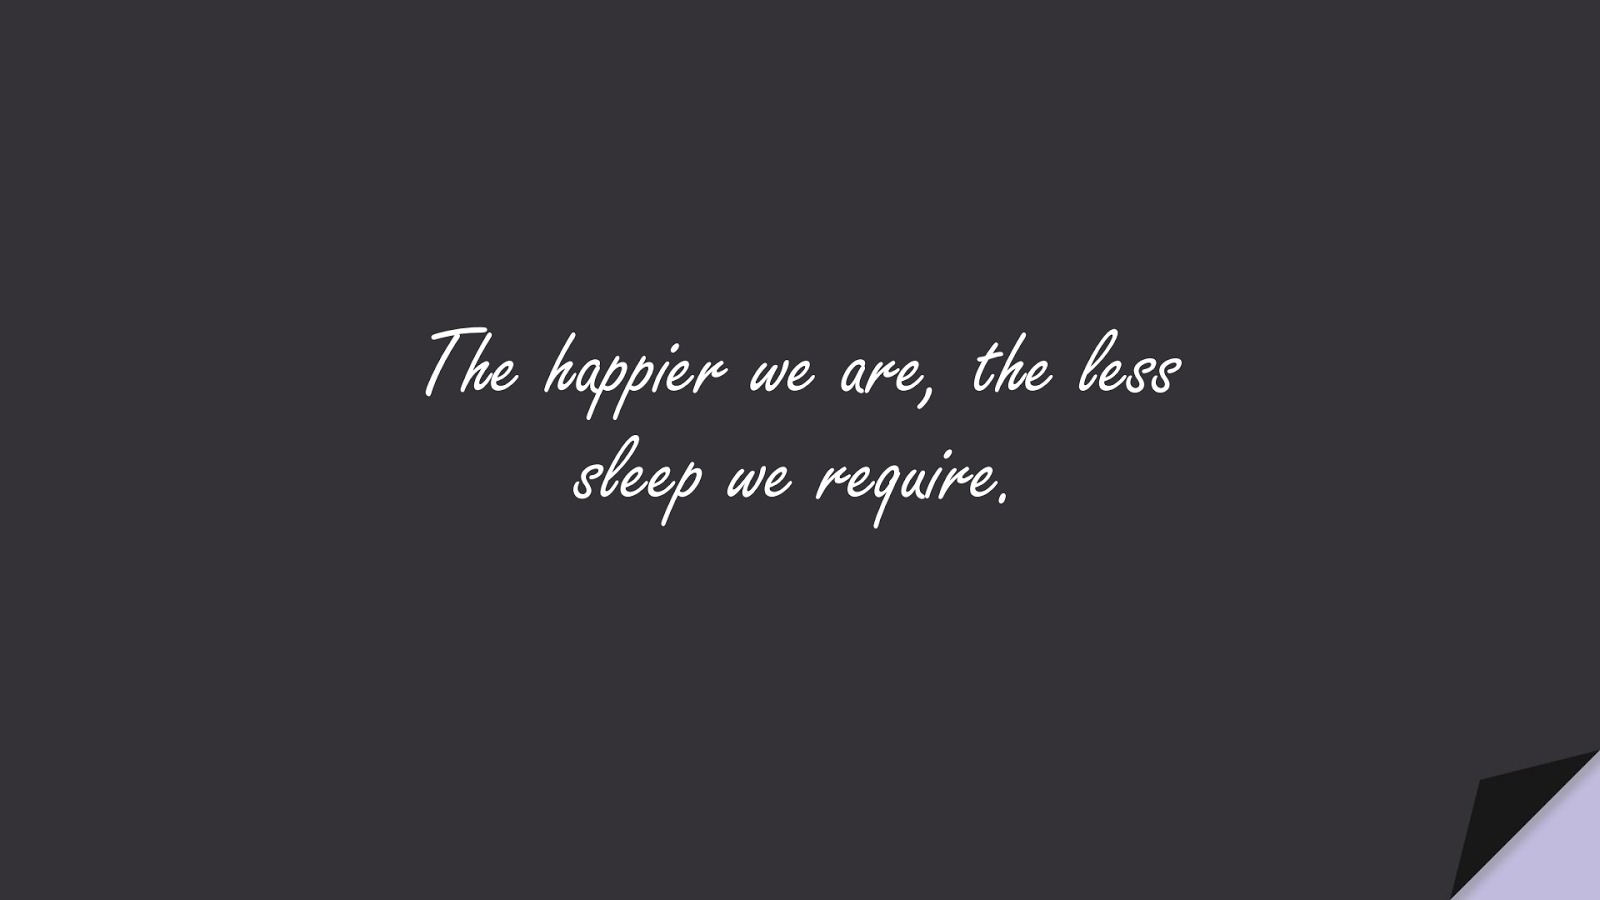 The happier we are, the less sleep we require.FALSE